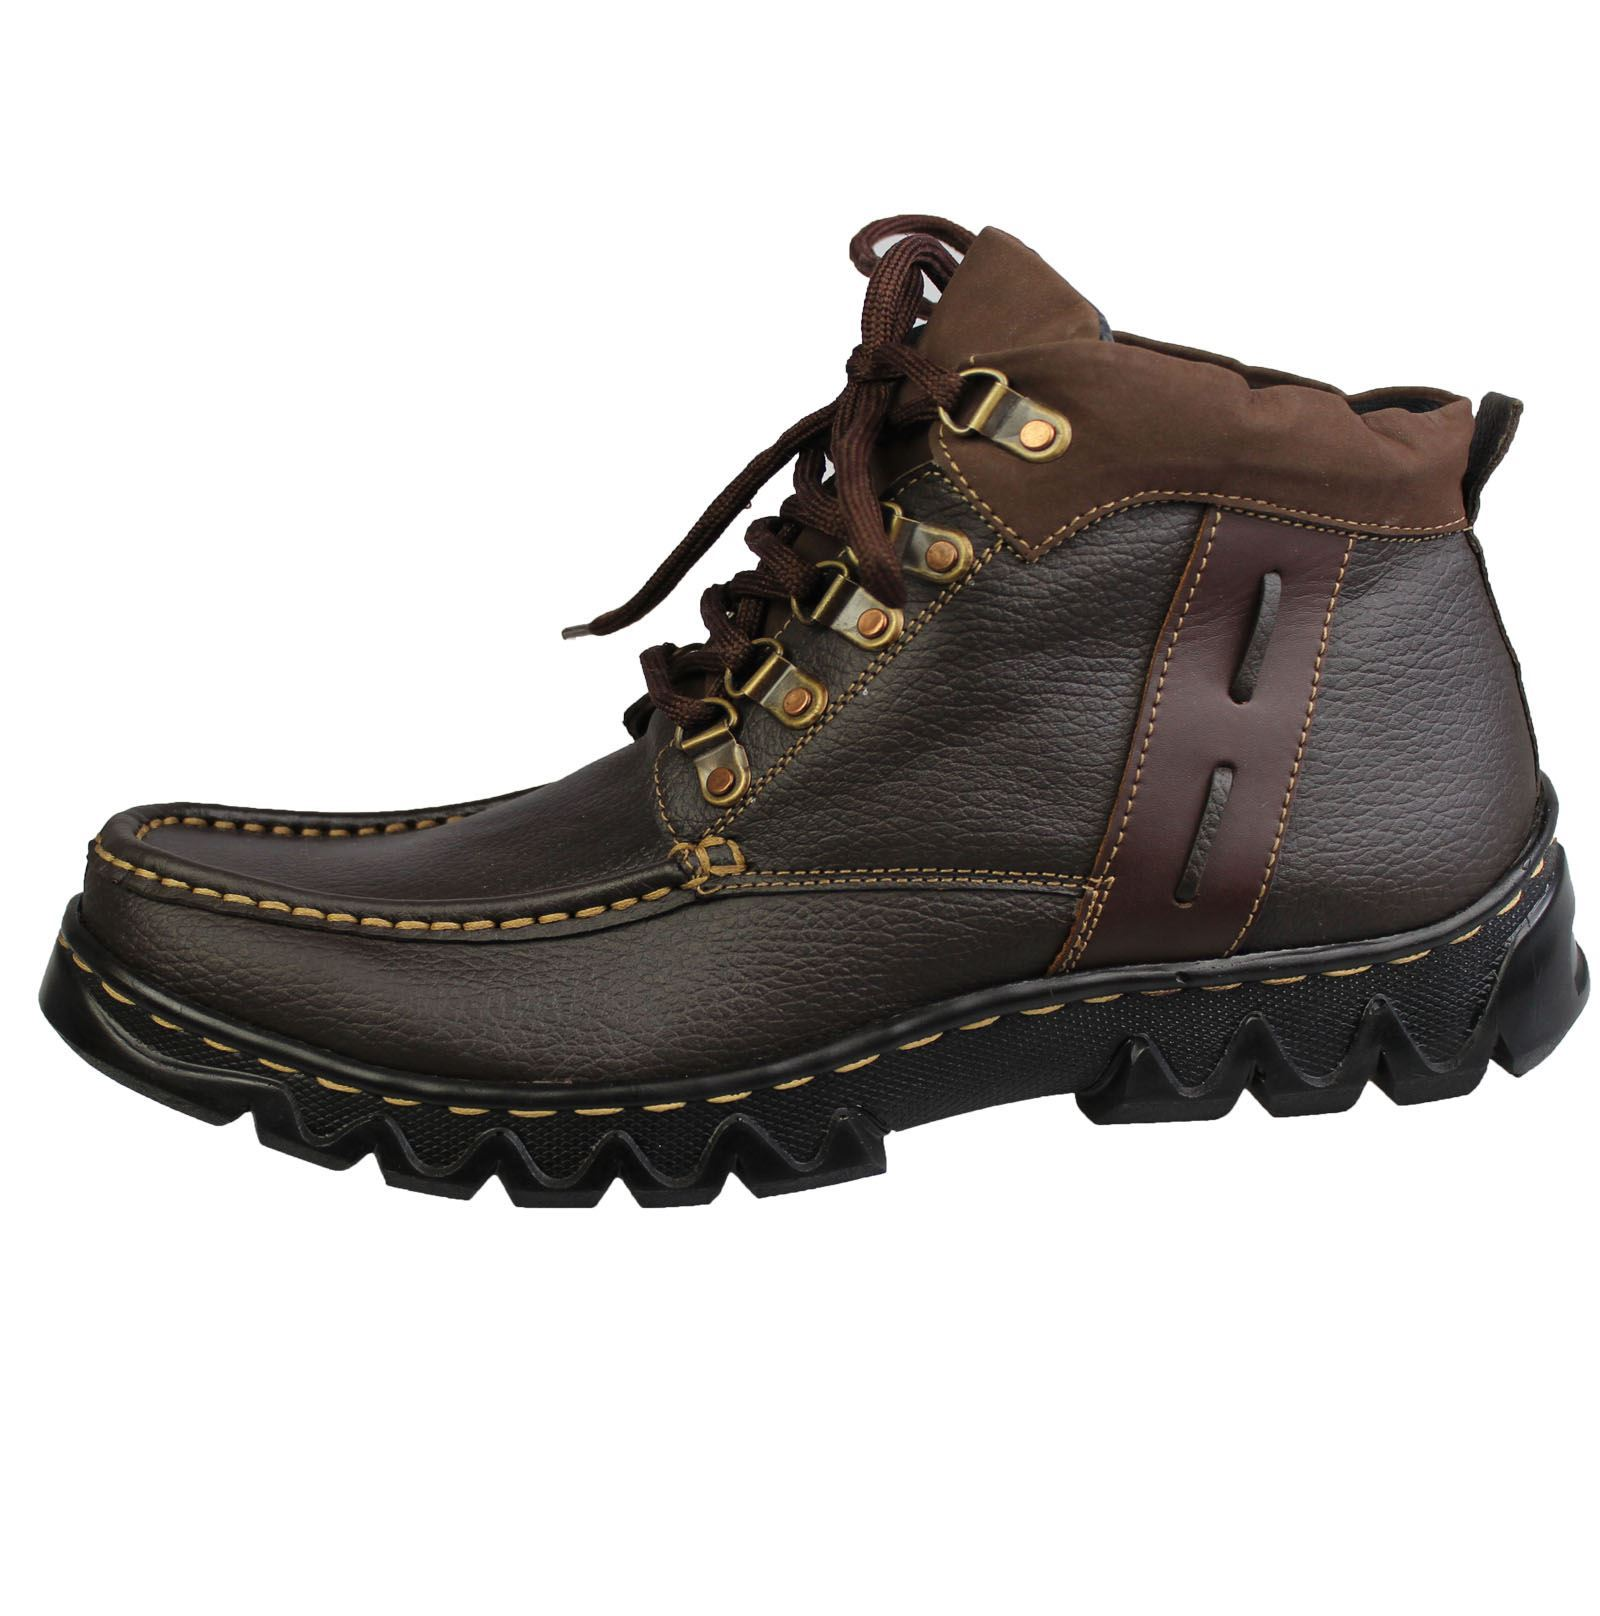 Boys Lace Up Boots Mild Leather Casual Comfort Boots Hiking Walking Shoes